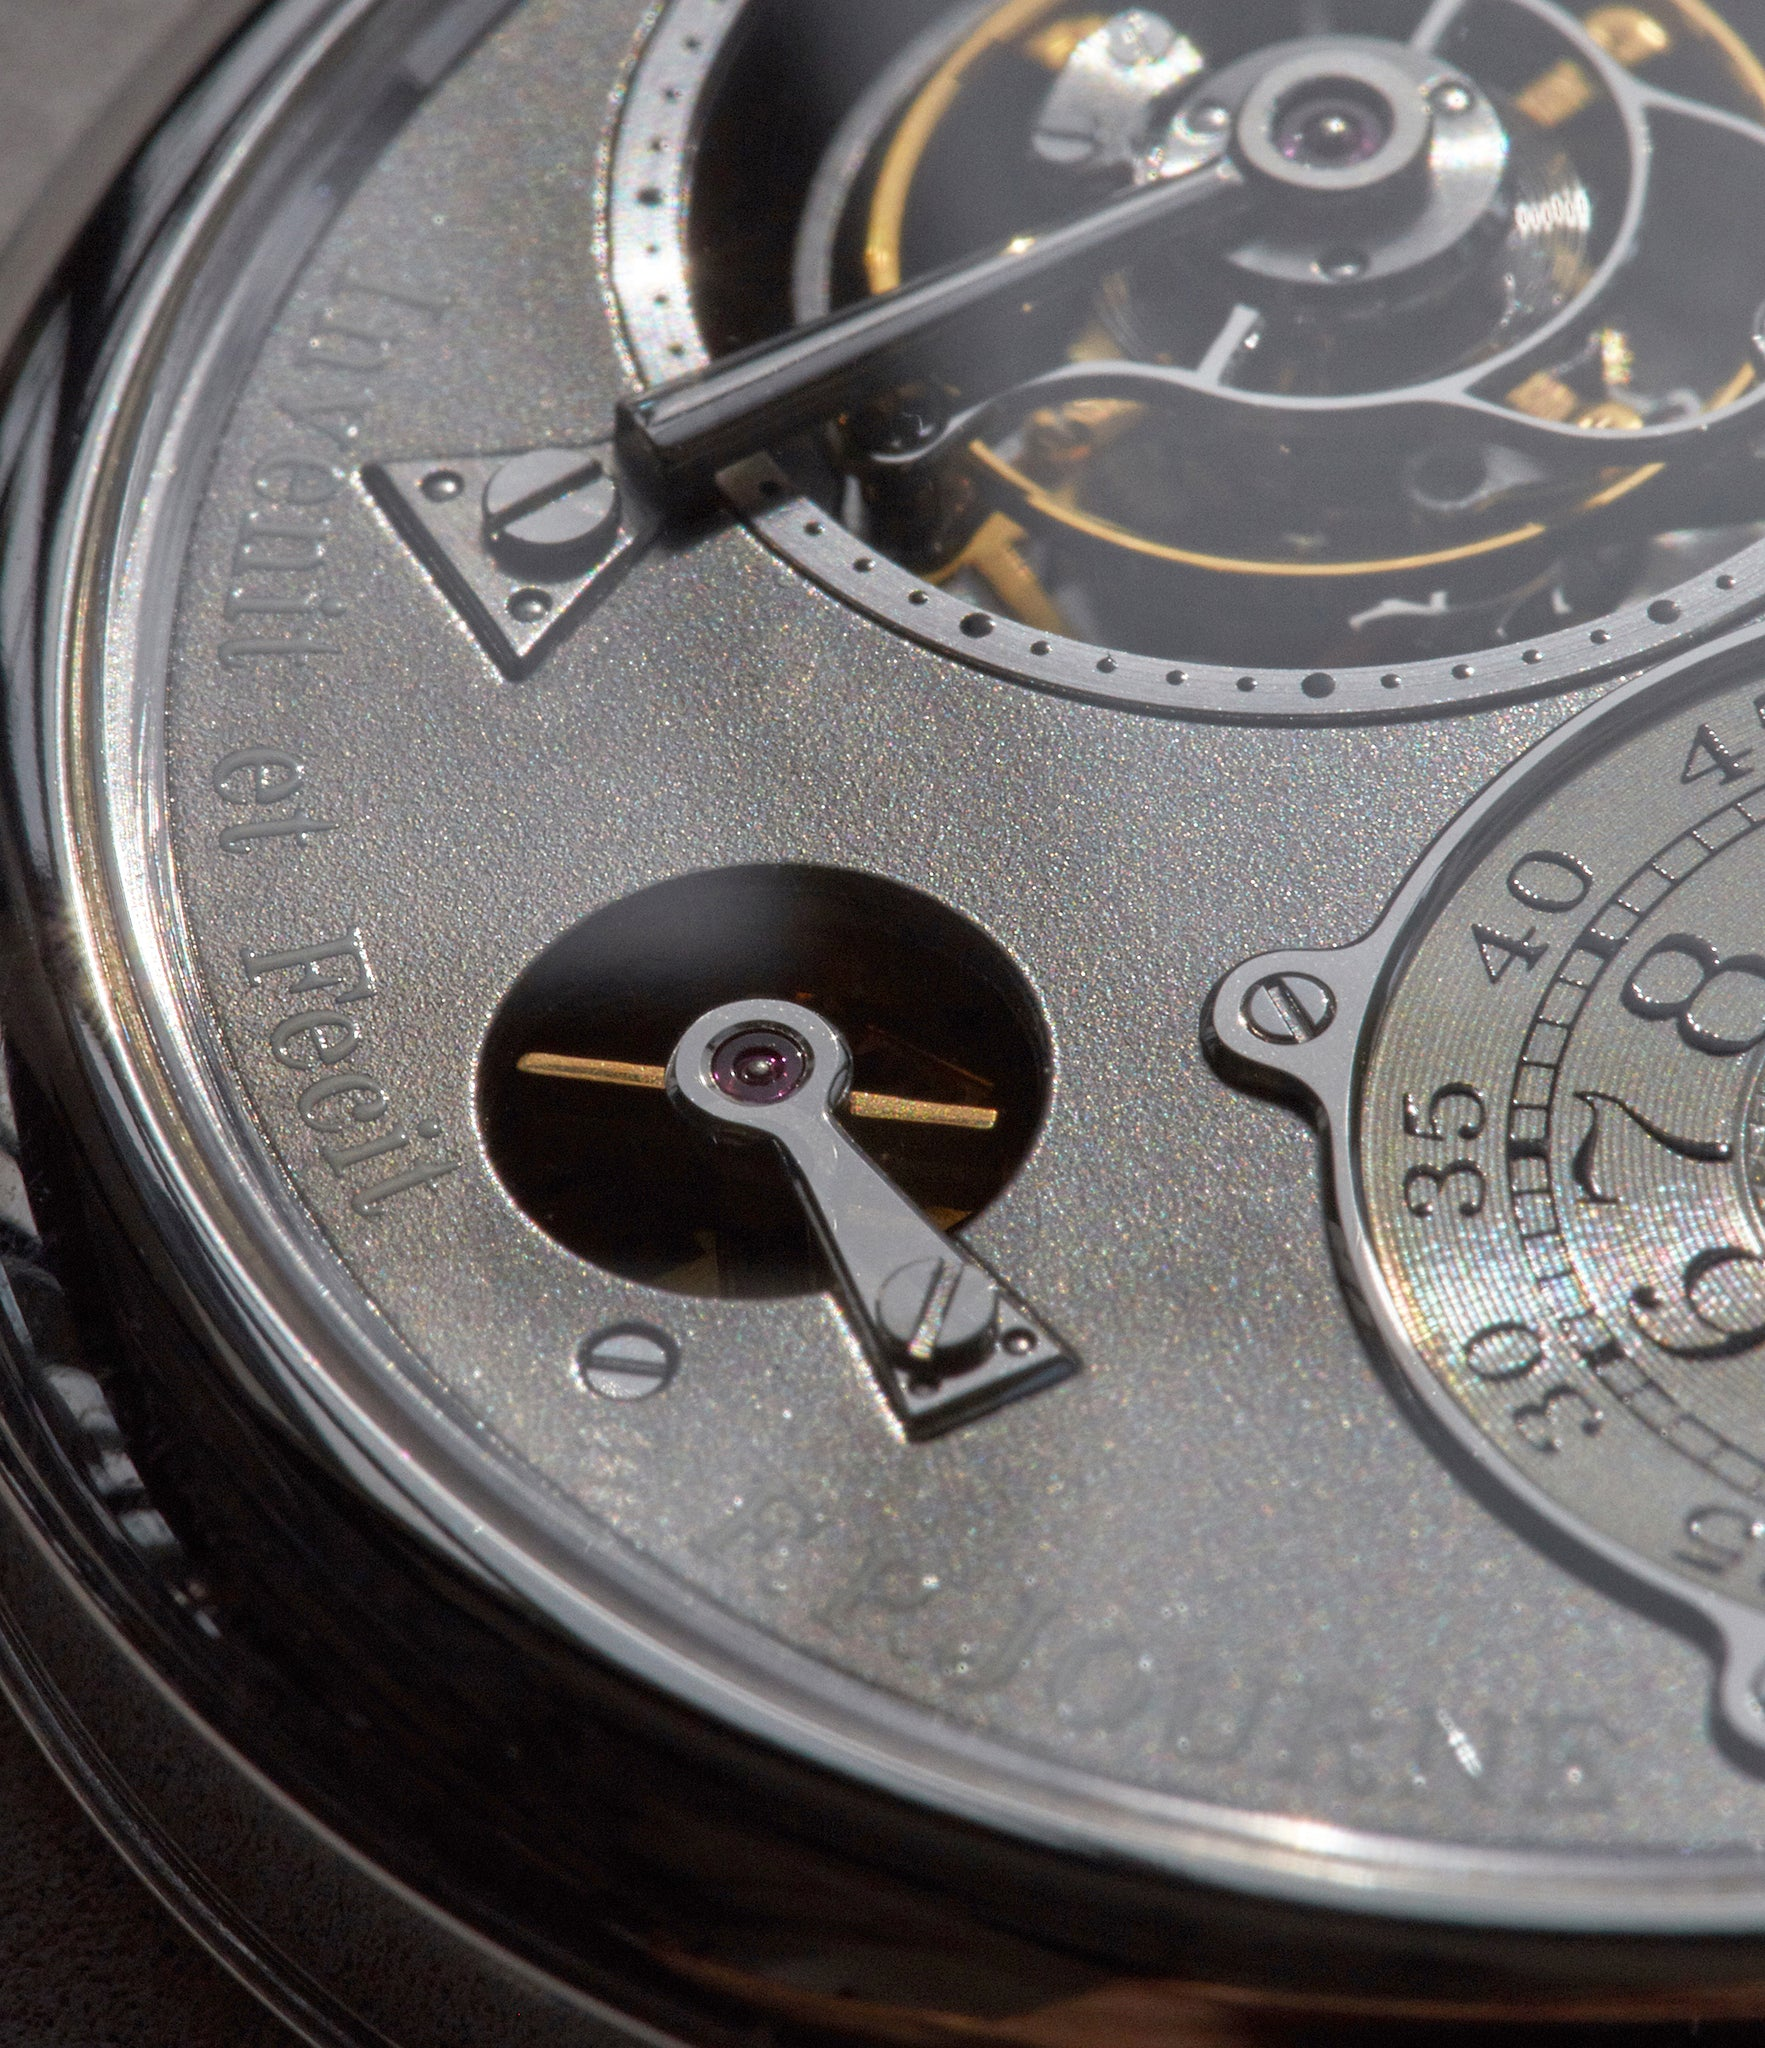 Macro image showing the details on the dial of the Tourbillon Souverain from the Ruthenium collection by F.P. Journe